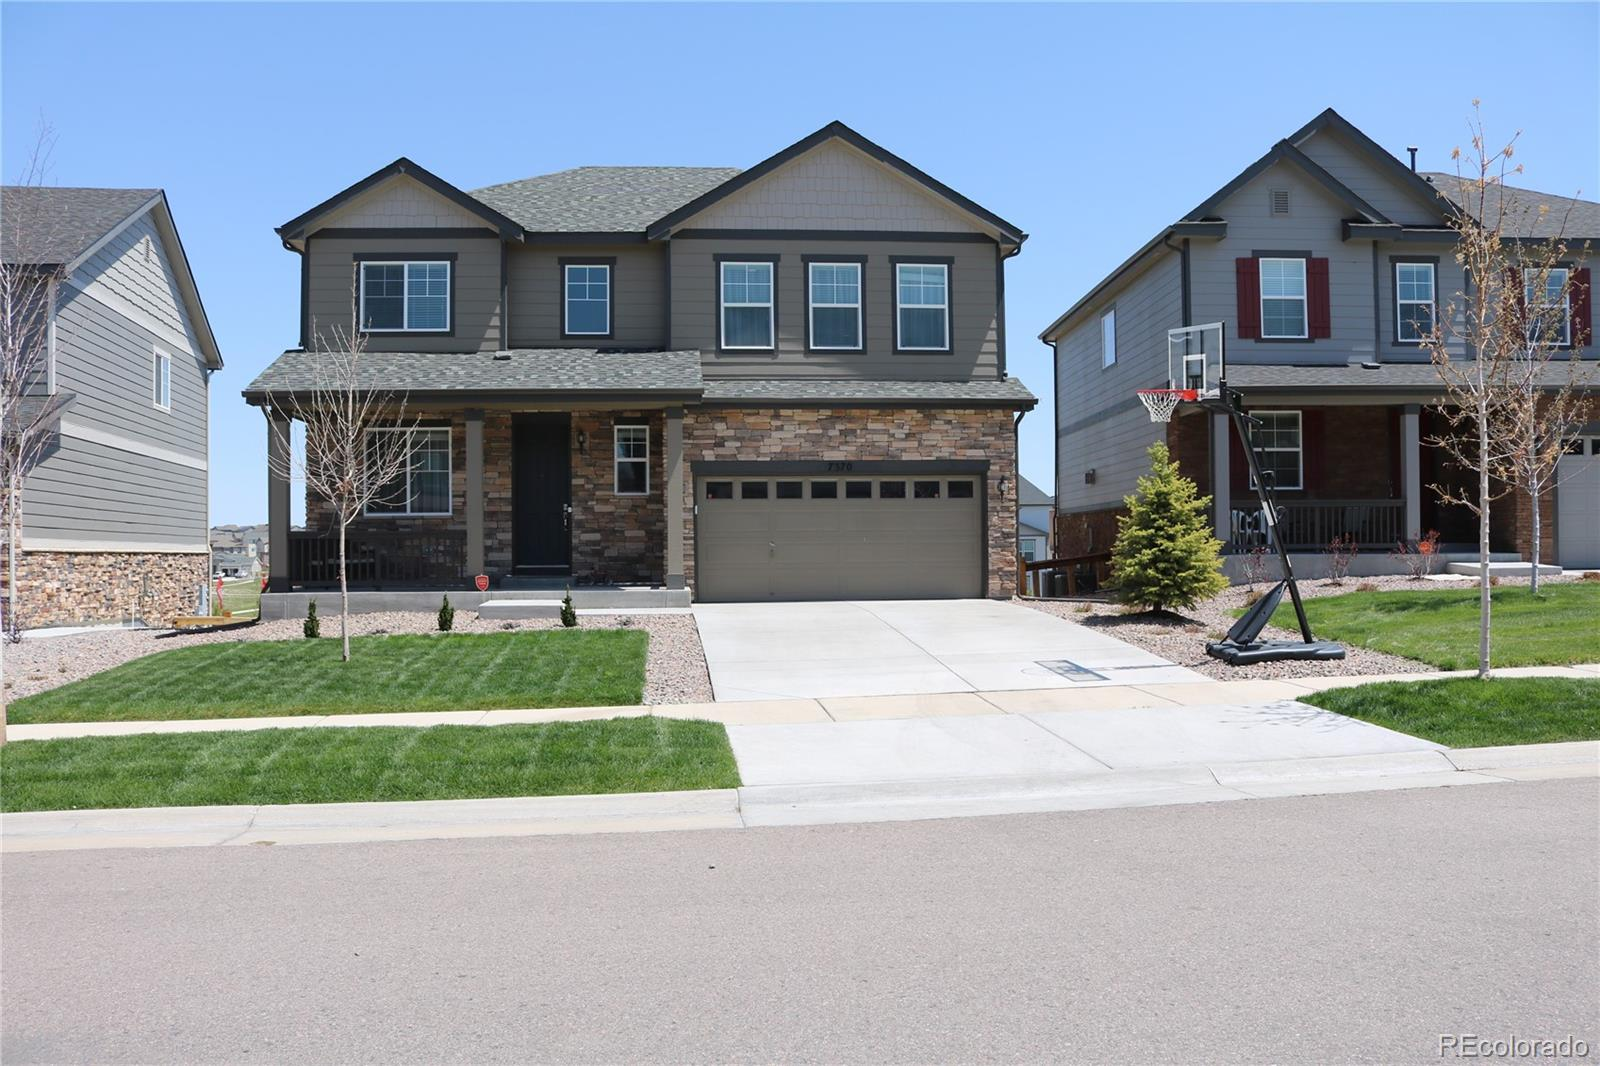 7370 S Old Hammer Way Property Photo - Aurora, CO real estate listing